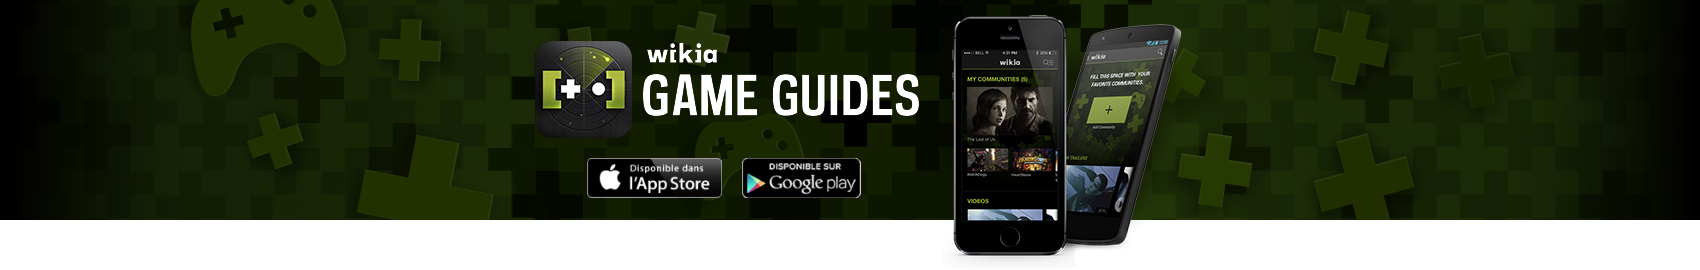 081414-Game-Guides-blogpost-with-WIKIA-02 fr.png